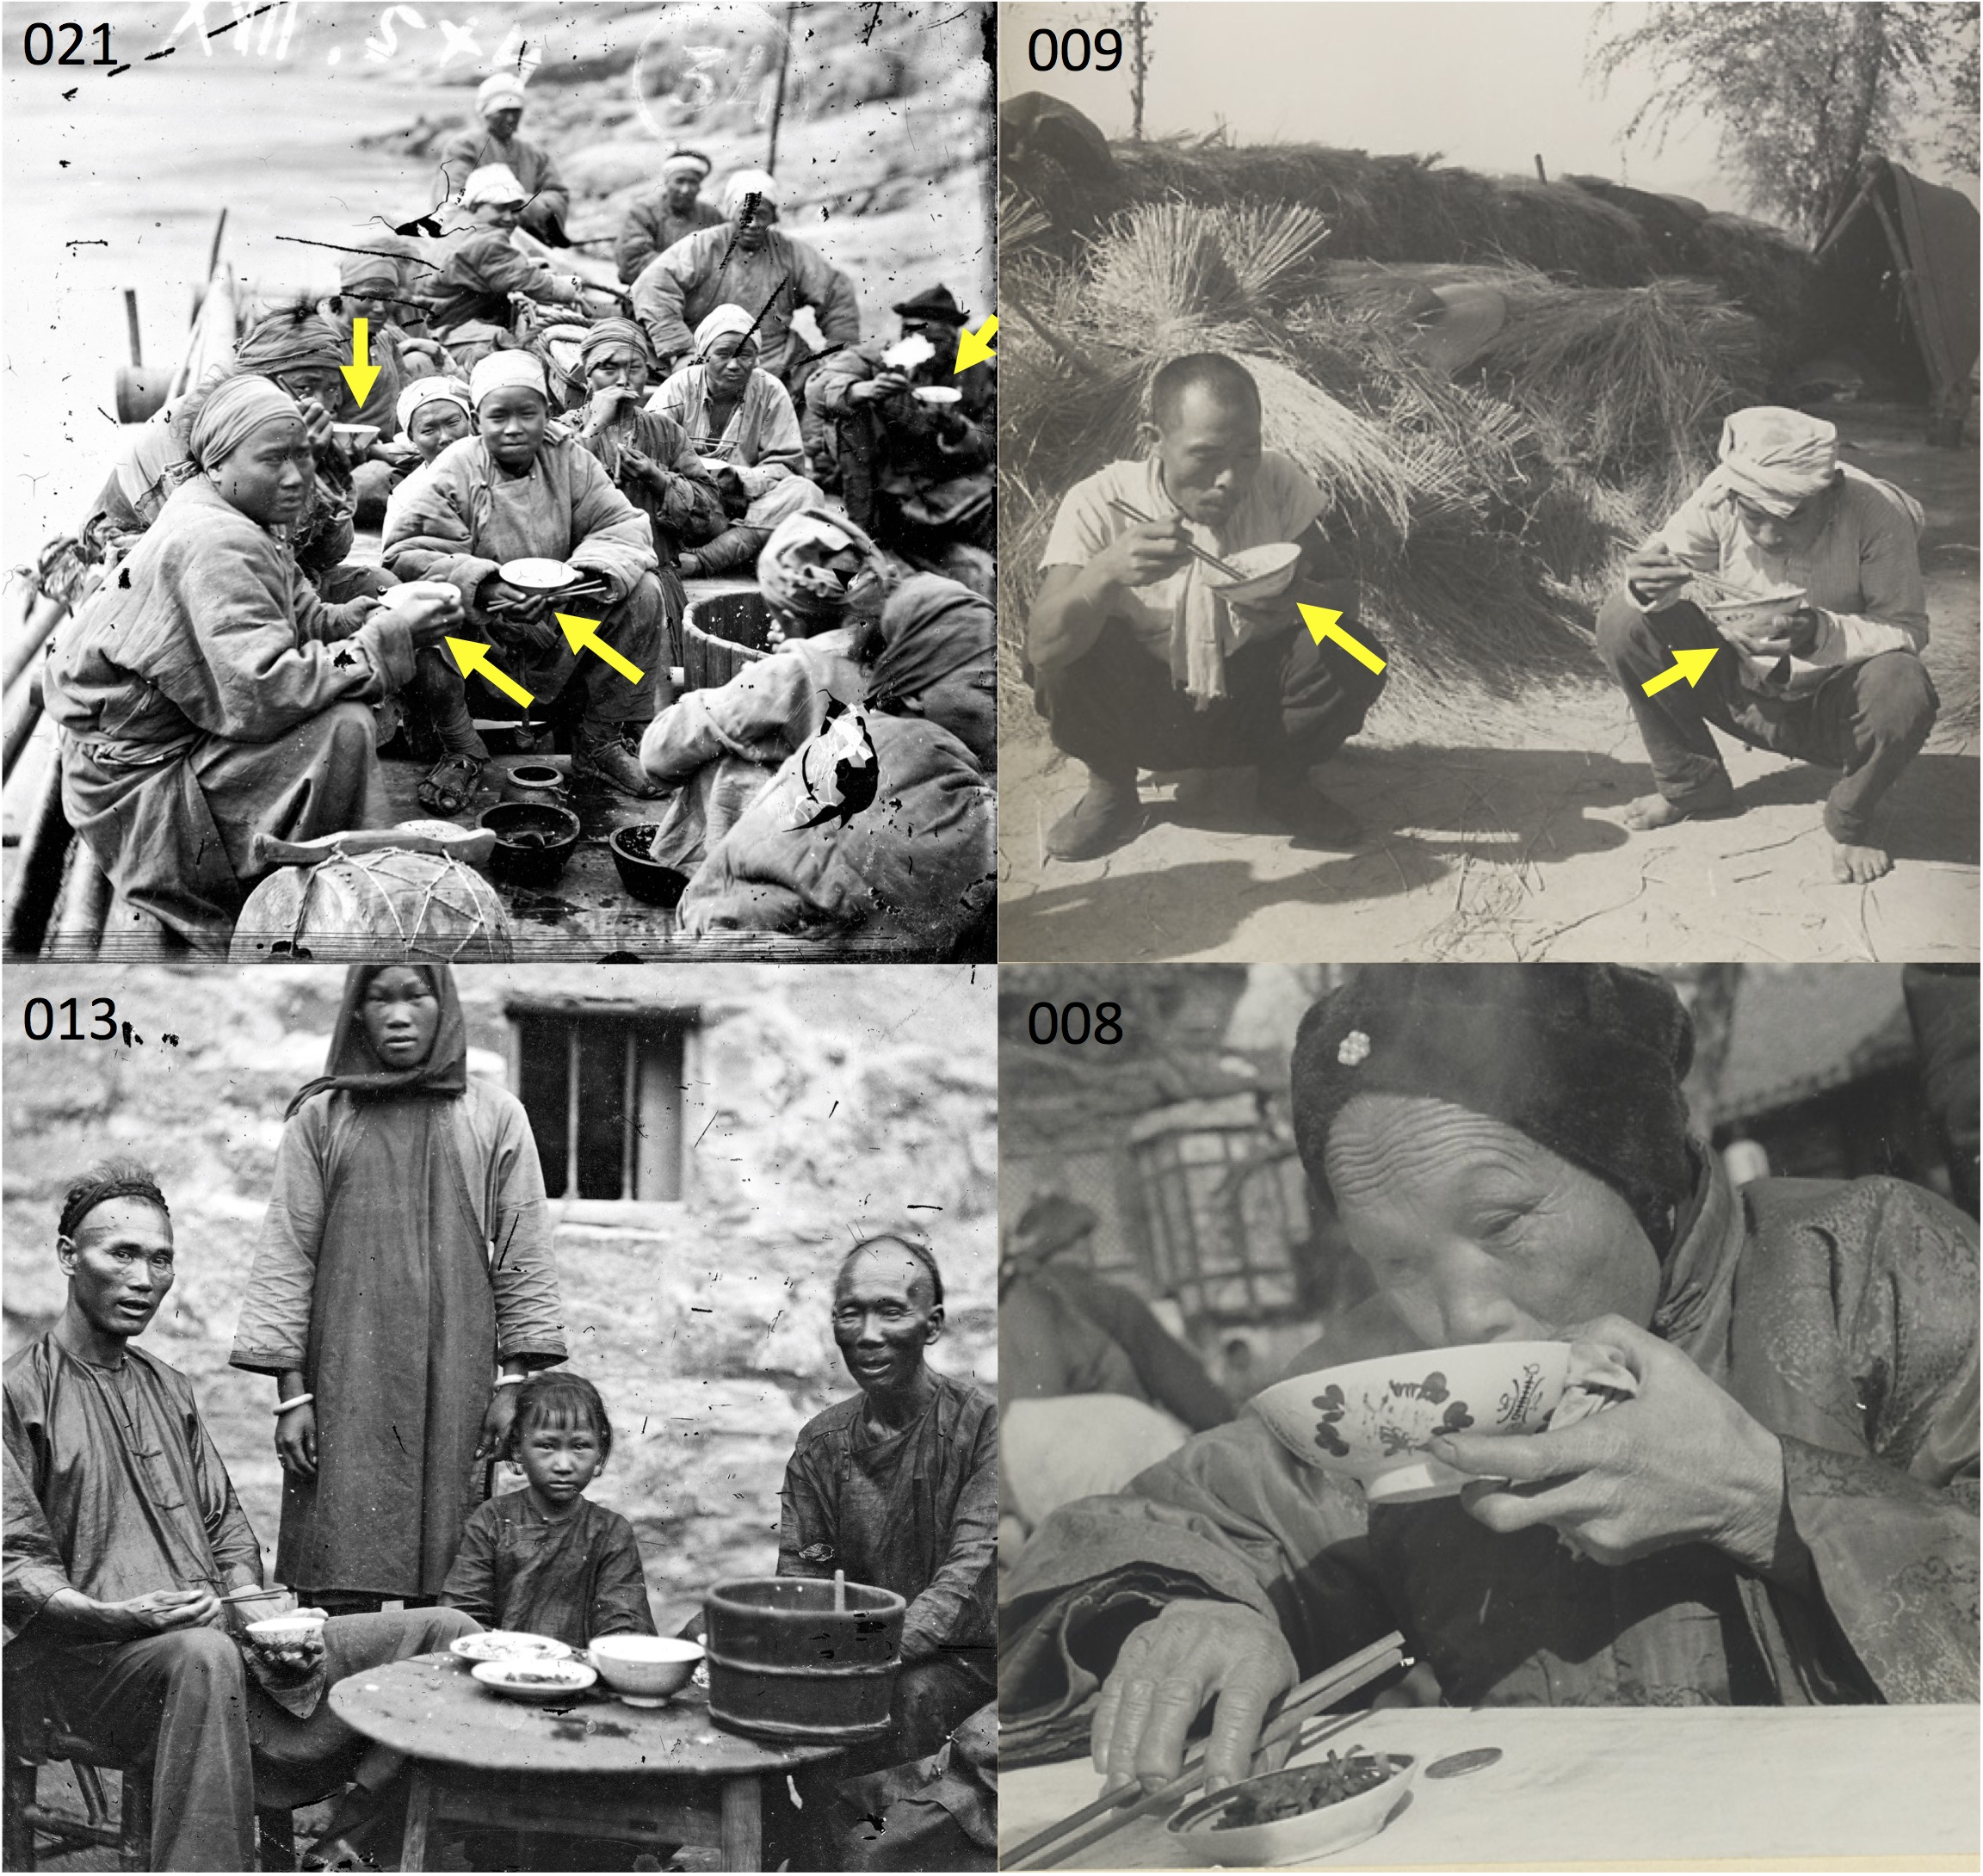 Chinese food eating, contexts 1 and 2—one or two dishes of food, eating with large bowl, with or without a table. Image 021: Boatmen on Upper Yangtze River, 1871 (photo by John Thomson ca 1871). Image 009: Farmworkers eating, near Beijing, ca 1933–1946 (Hedda Morrison ca 1933–1946c). Image 013: A poor family, Canton, 1869 (John Thomson 1869). Image 008: Woman eating at food vendor's stand, near Beijing, ca 1933–1946 (Hedda Morrison ca 1933–1946b). [Web sources for images are listed in article]